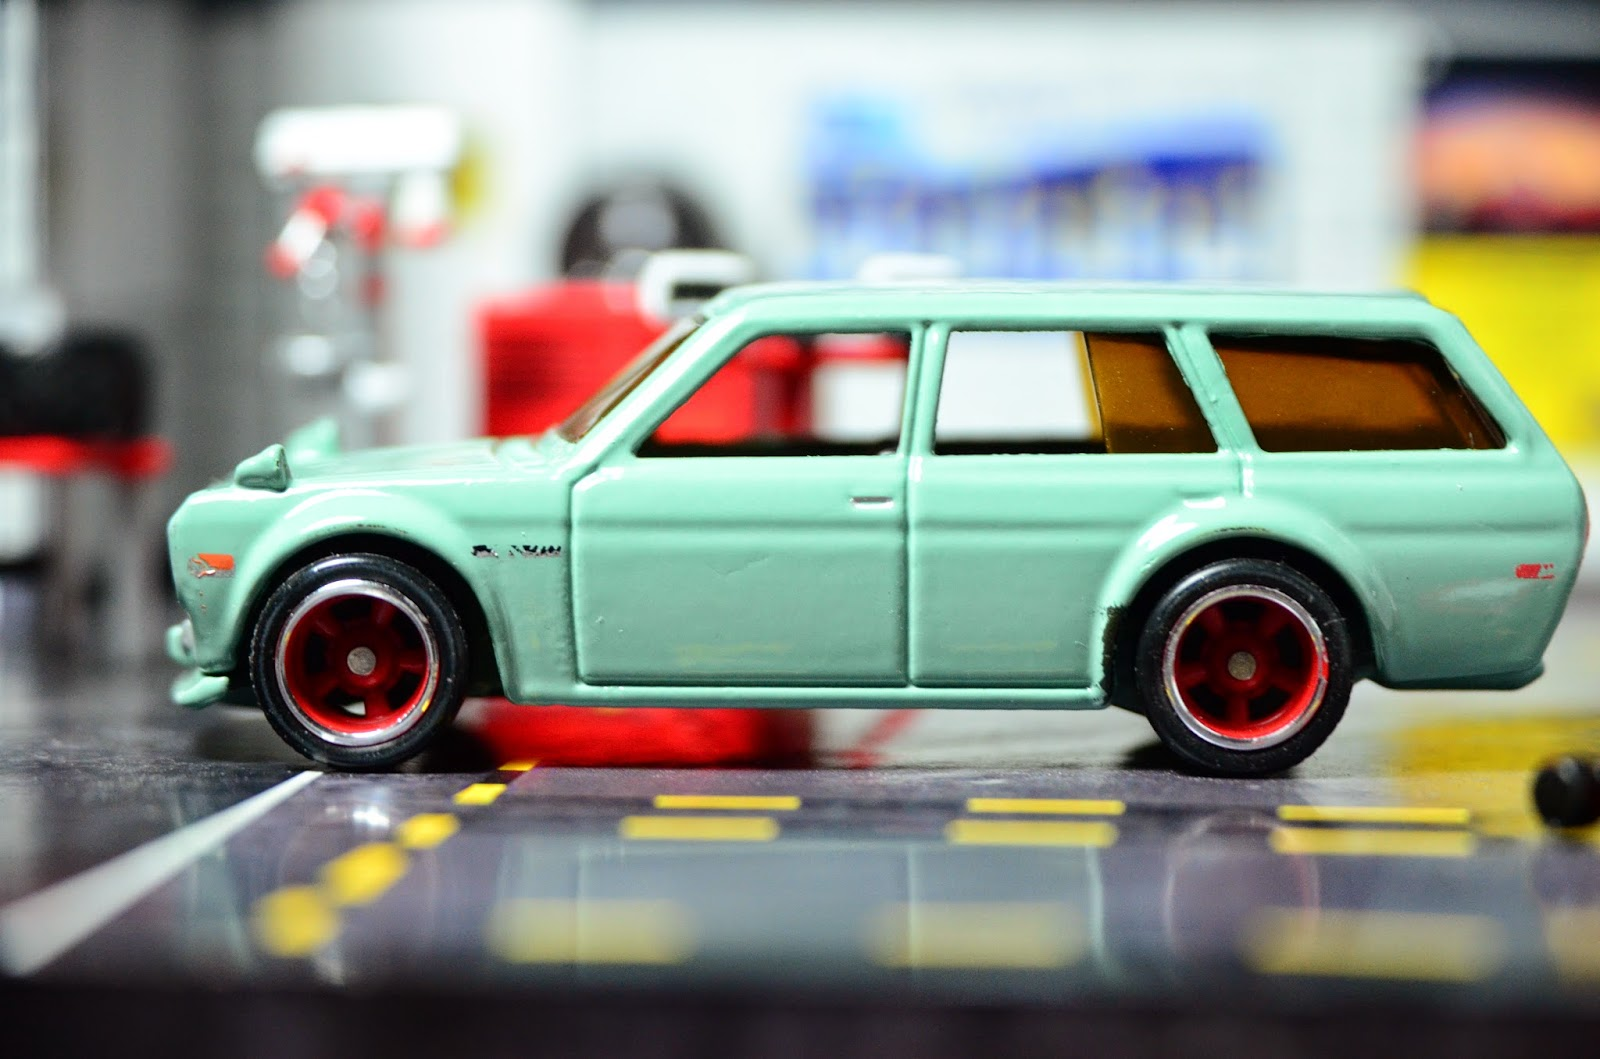 Hot wheels online article review